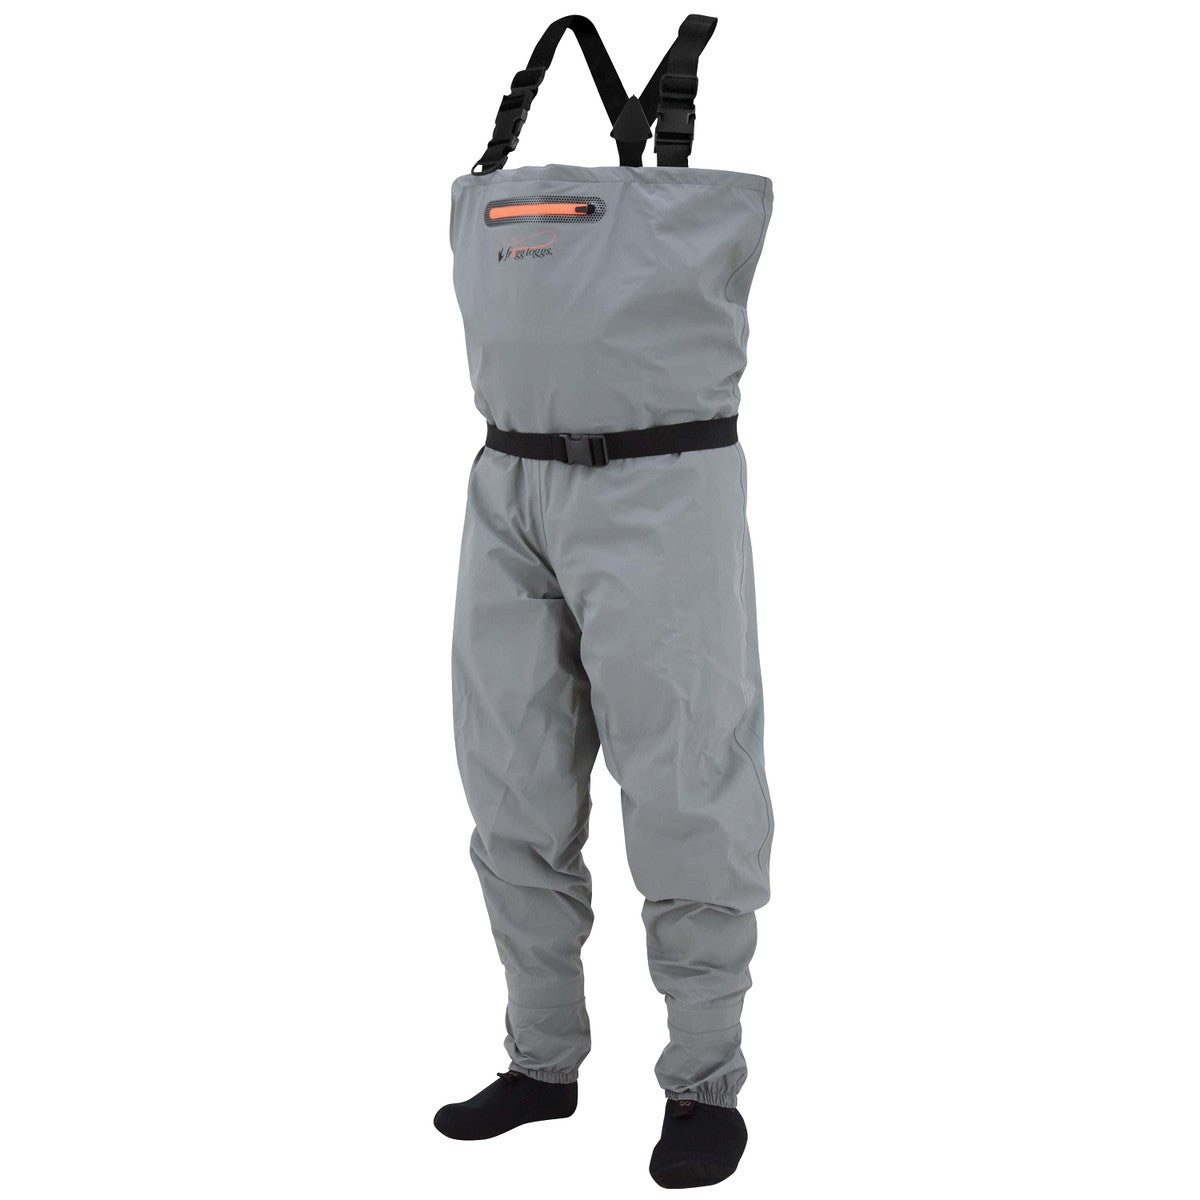 Frog Toggs breathable fishing waders